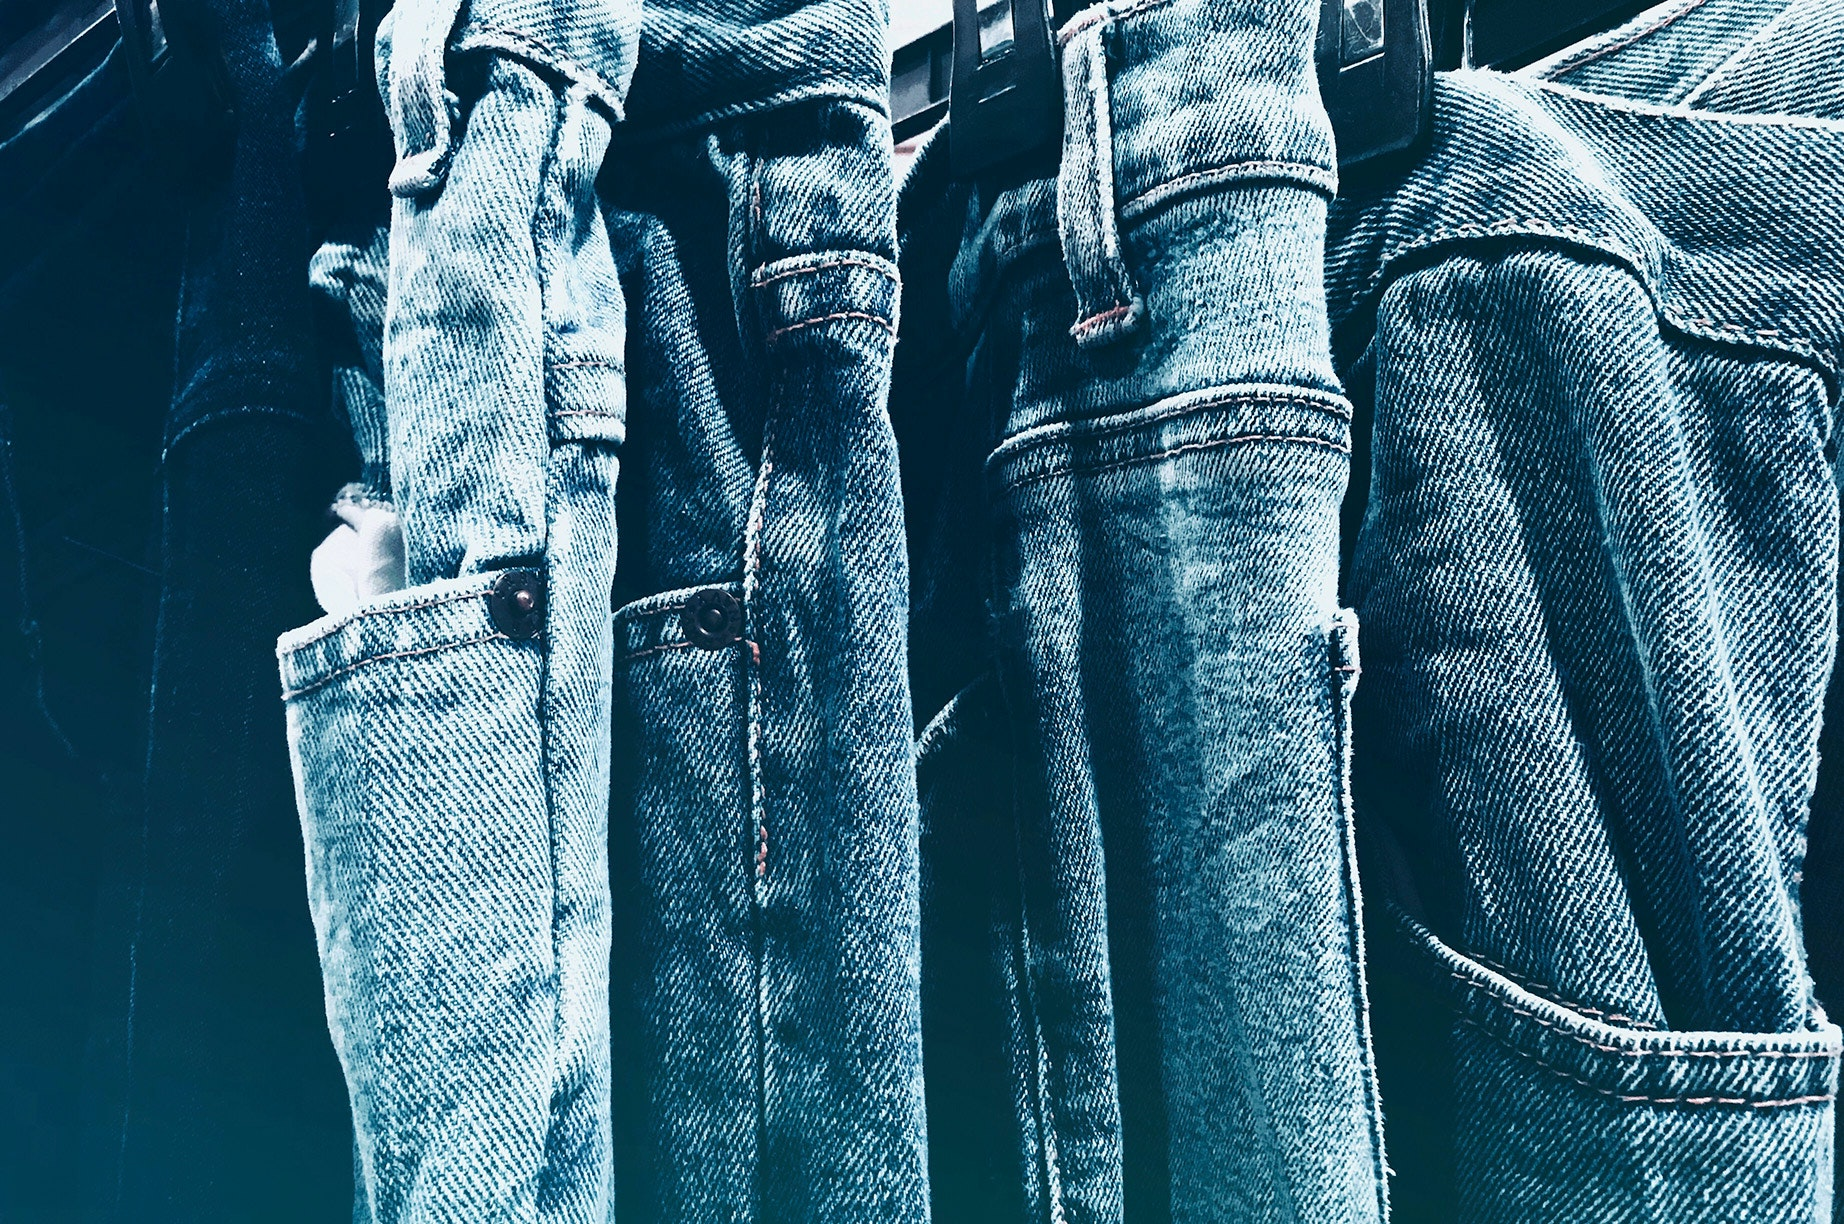 Related Searches Jeans Fashion Texture Denim Jacket Clothes